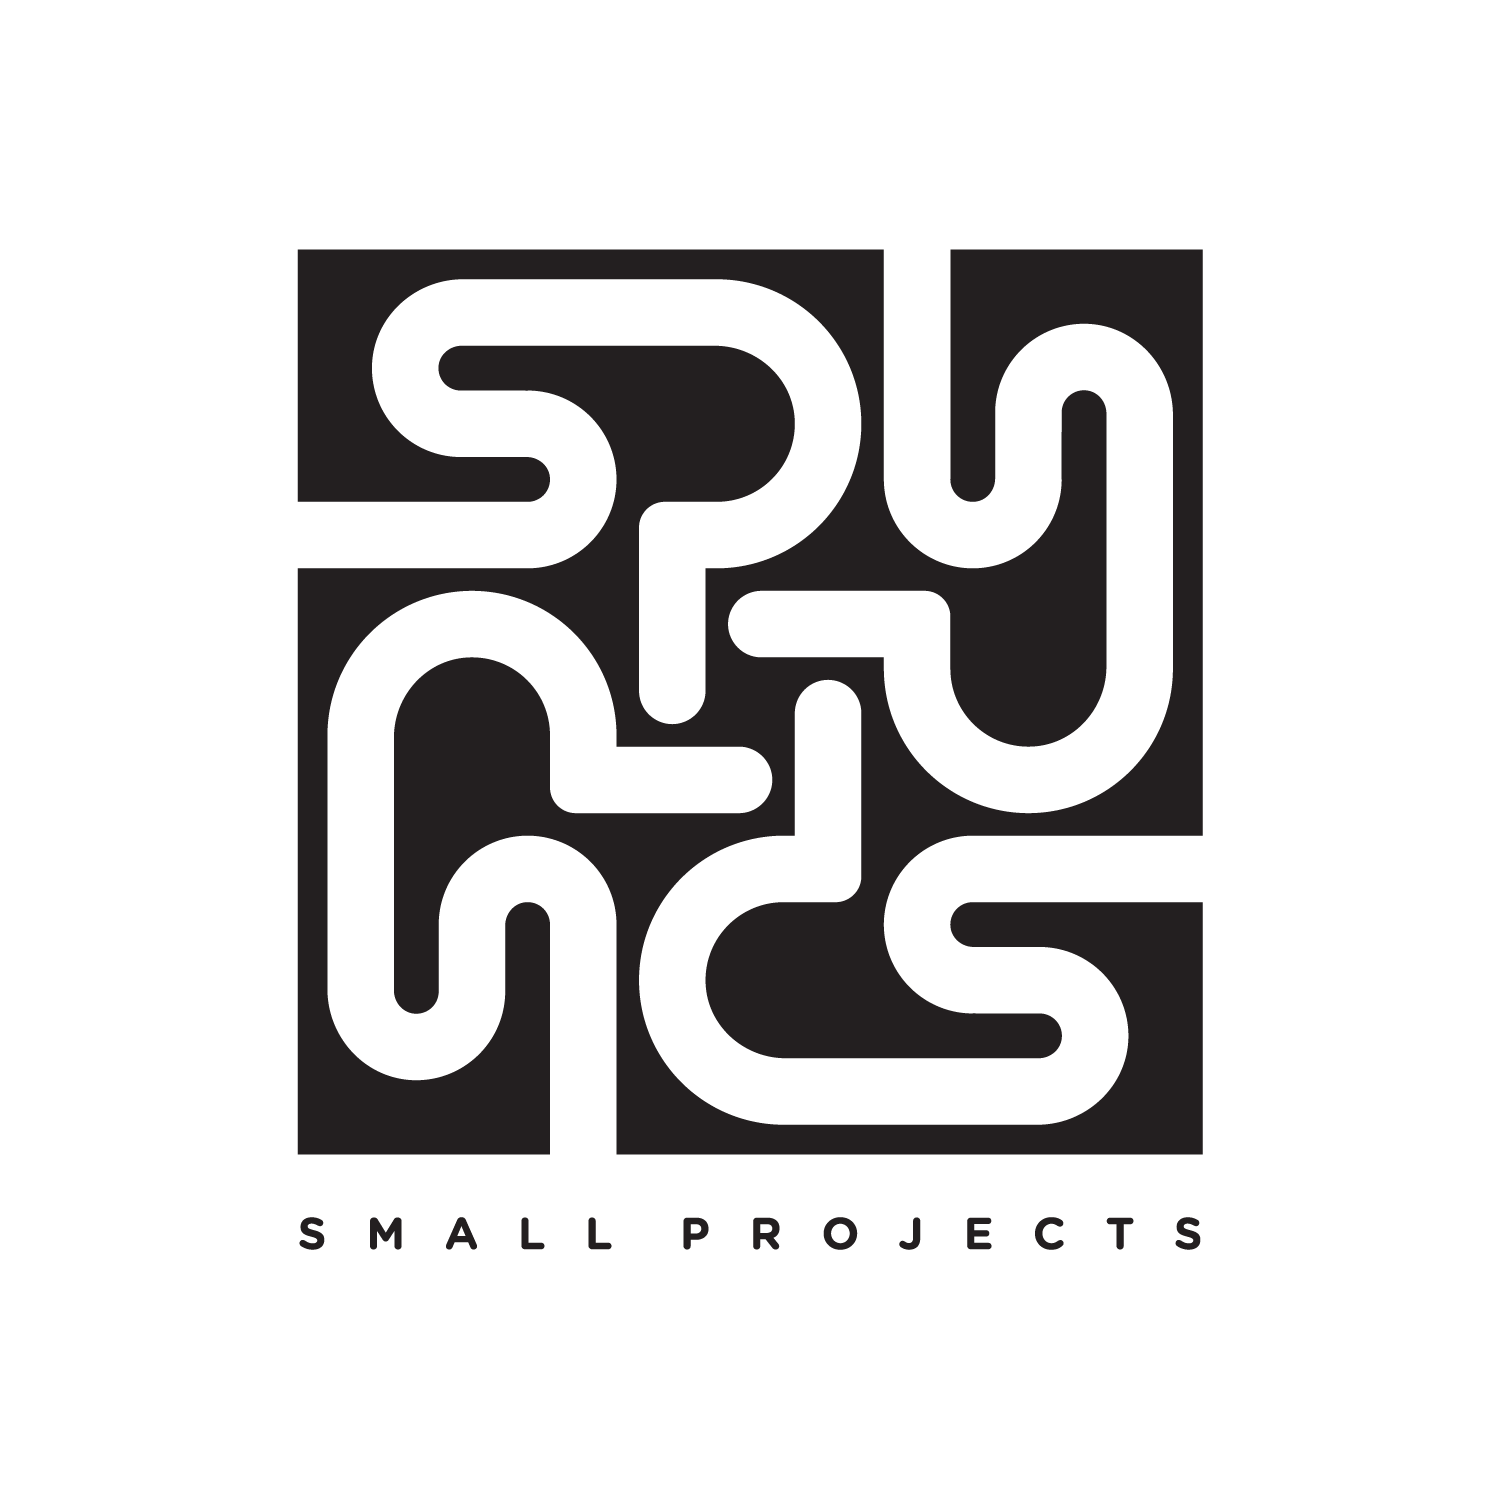 Small Projects